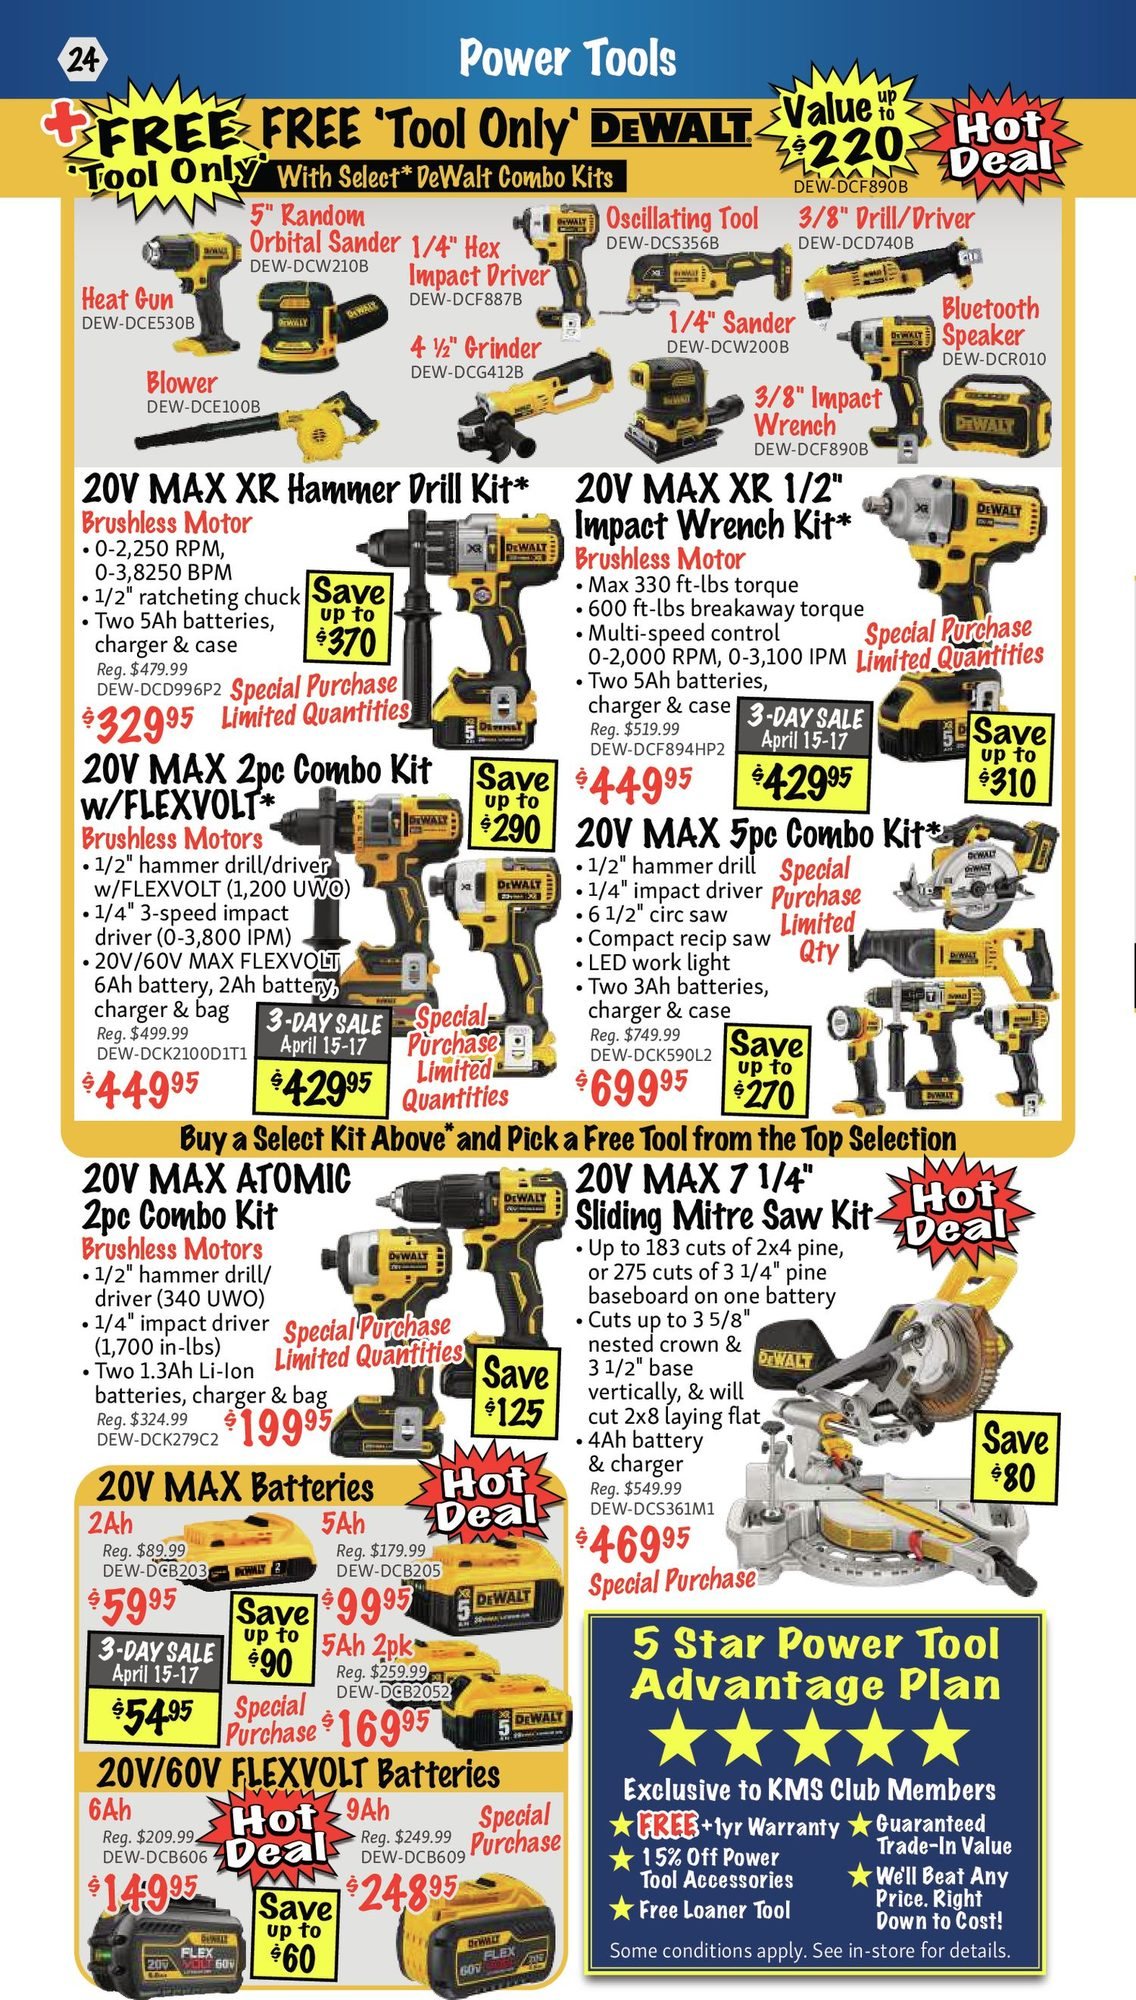 KMS Tools - Hand Tools, Air Tools & Compressor Sale - Page 24